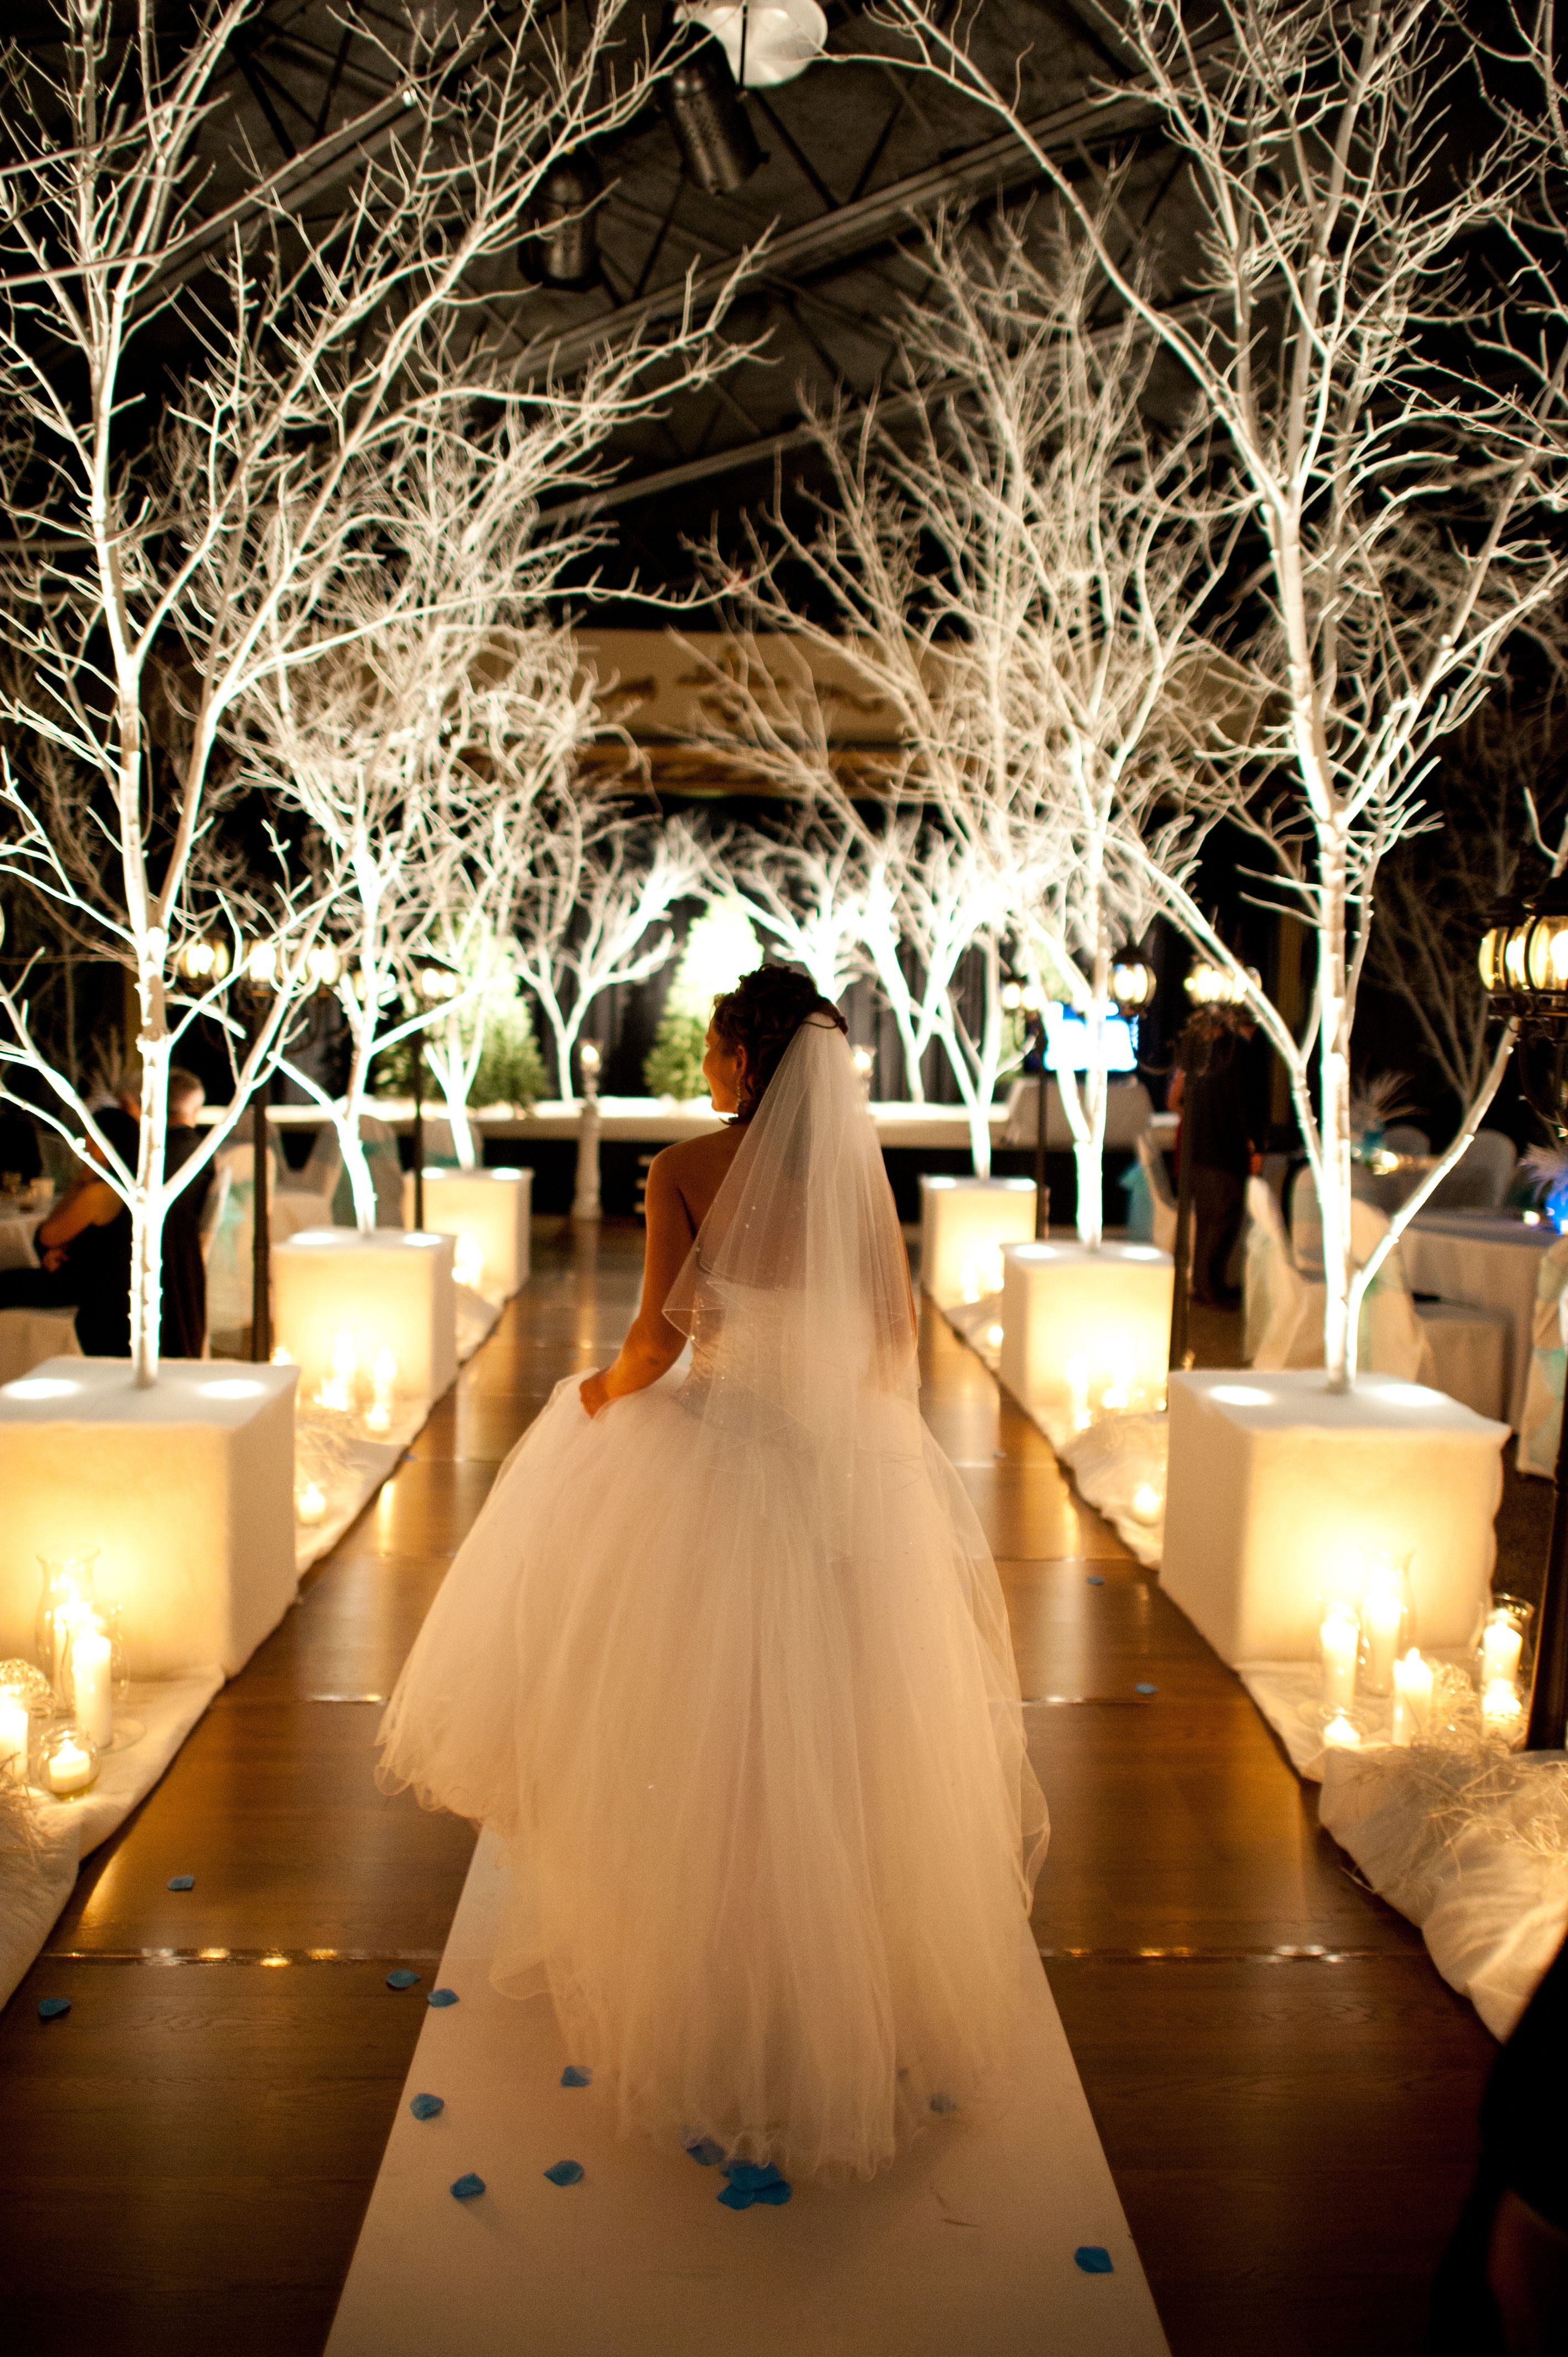 My very own winter wonderlandunning special day d my very own winter wonderlandunning winter wedding ideaswedding junglespirit Images